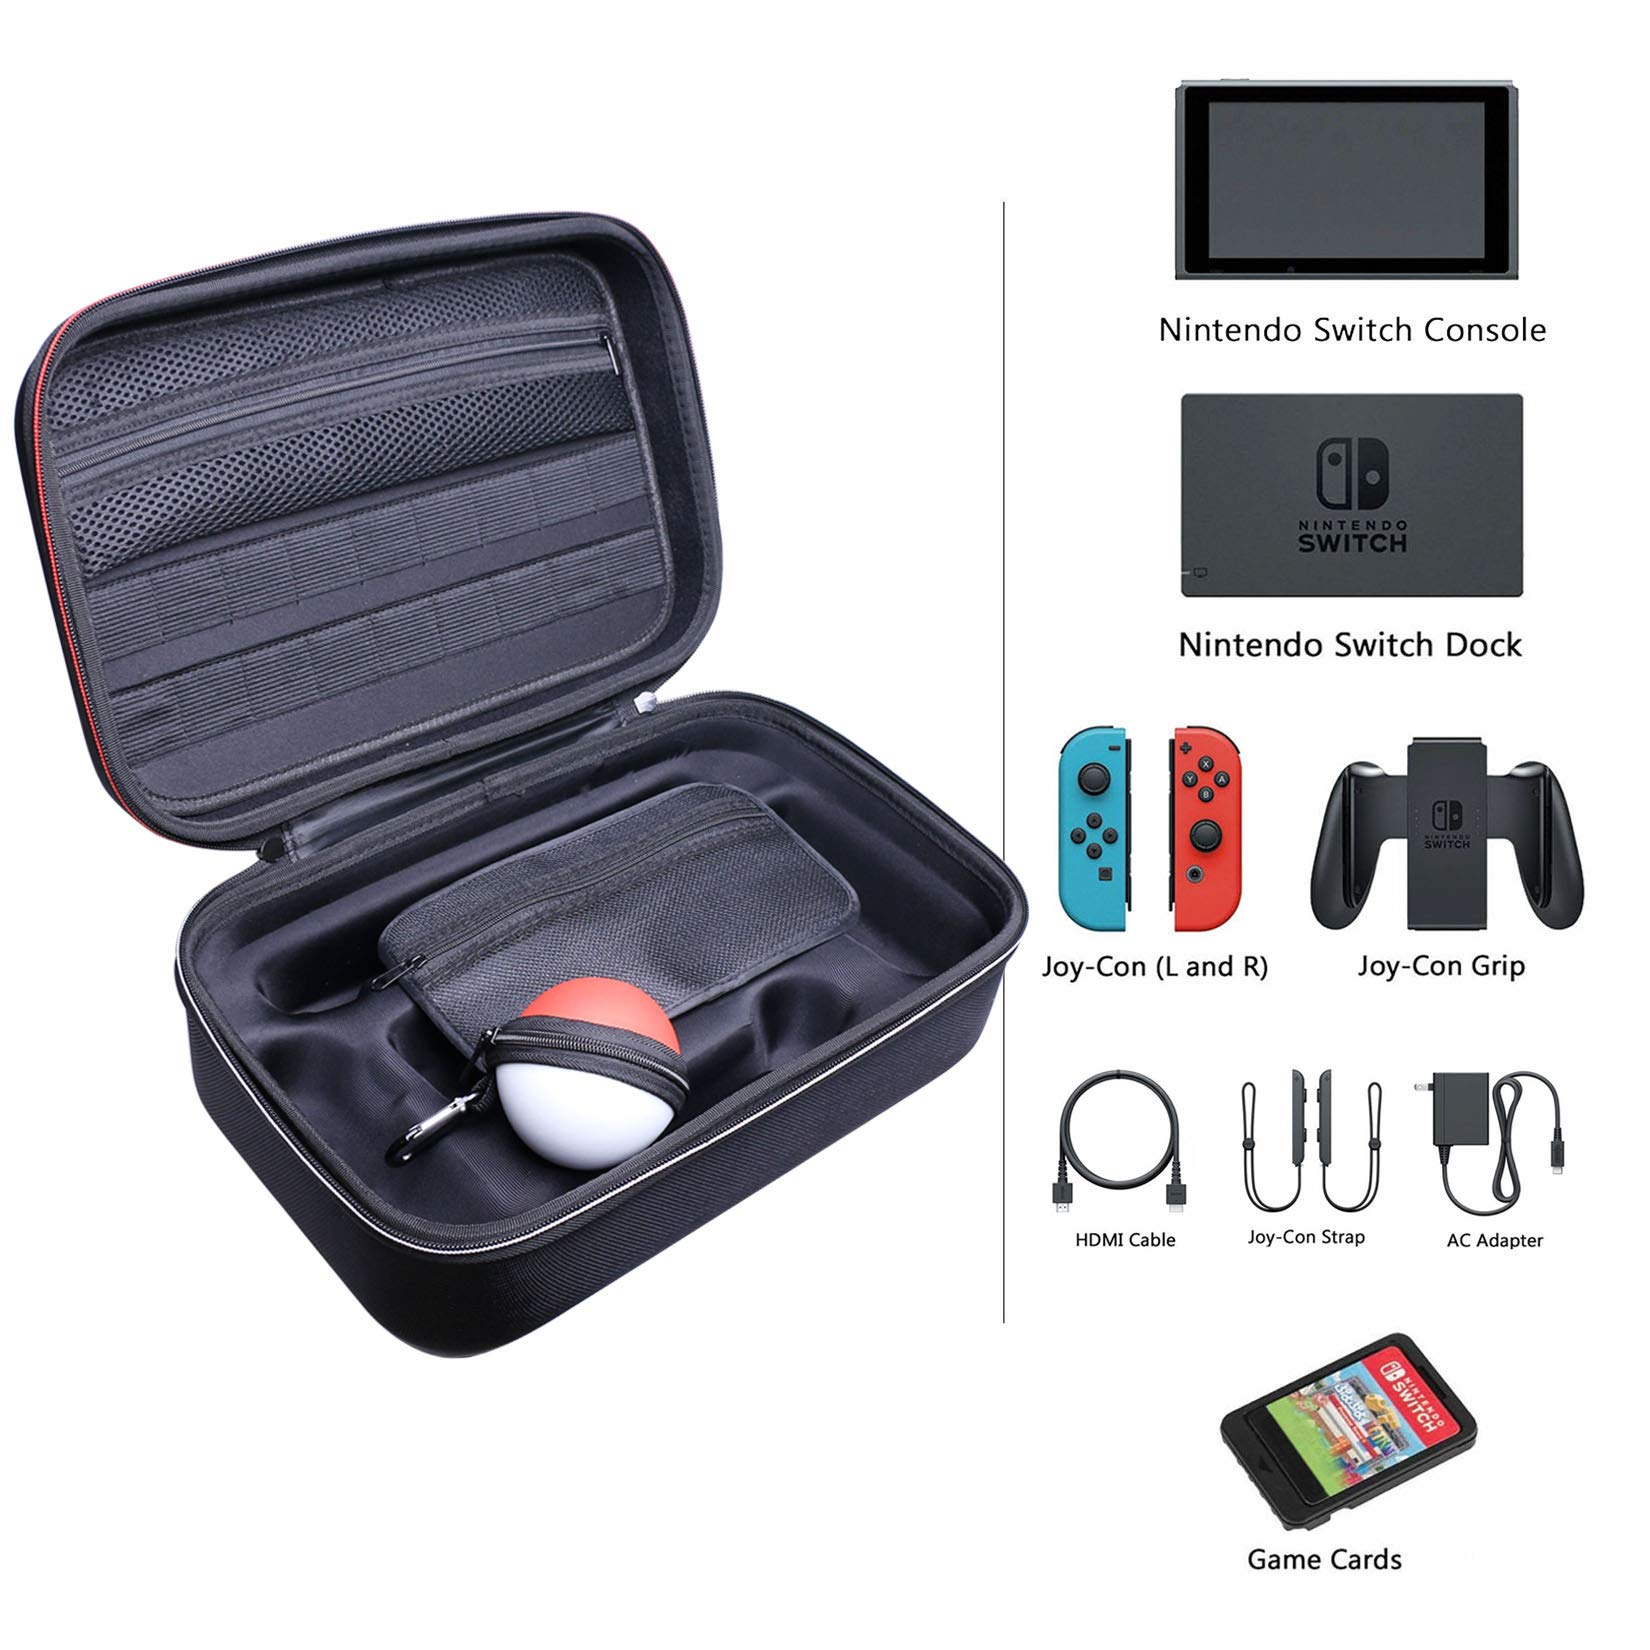 Black NINTENDO SWITCH CASE Carrying Travel Storage Bag Hard Shell Pouch Cover Holds Accessories Pro Controller Charger Joycons AC Adapter SD Card HDMI Cable Charging Dock